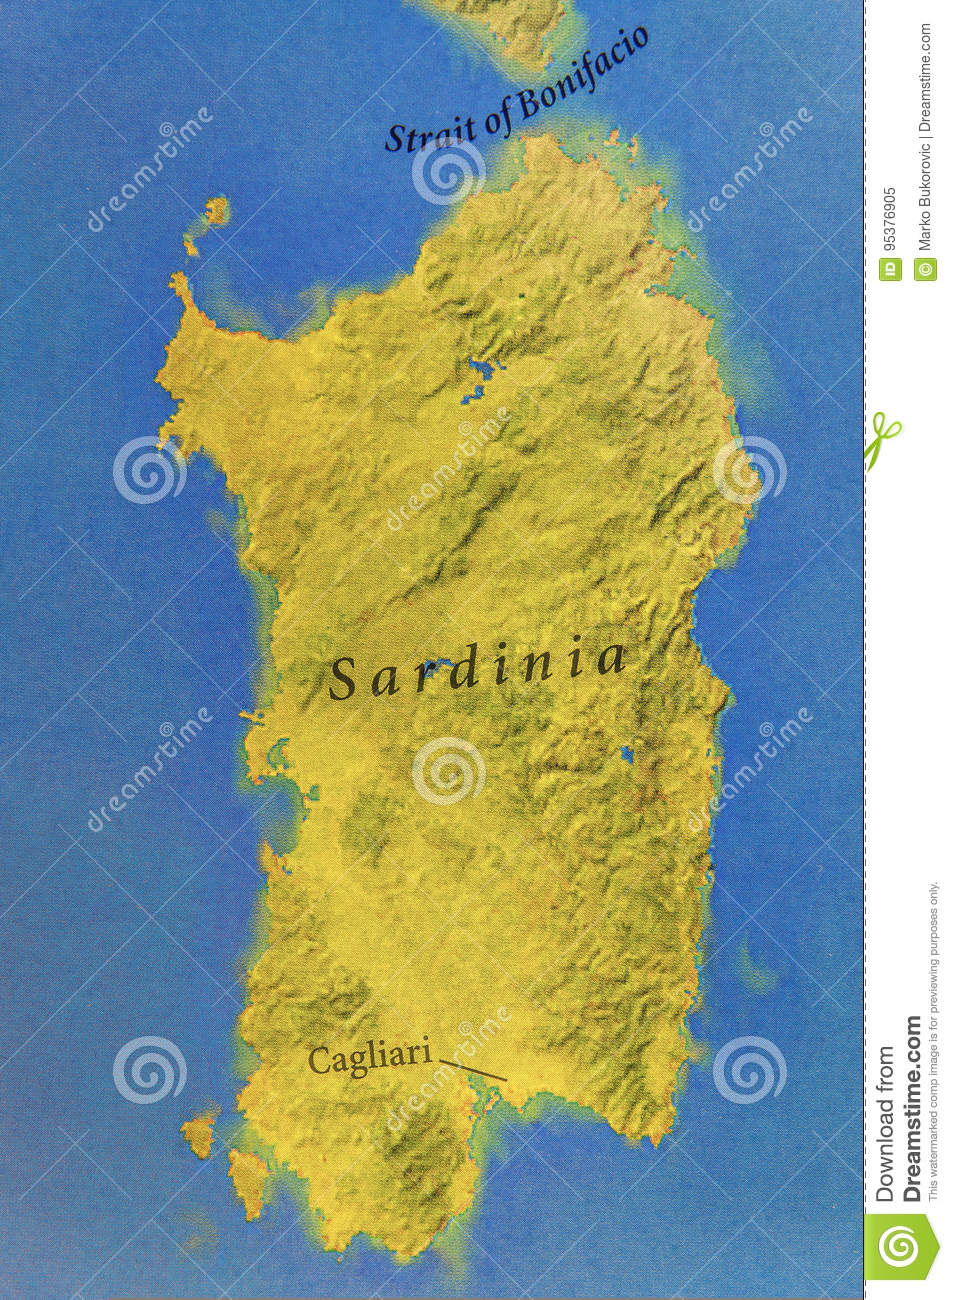 Map Of Italy And Islands.Geographic Map Of European Country Italy With Island Sardinia Stock